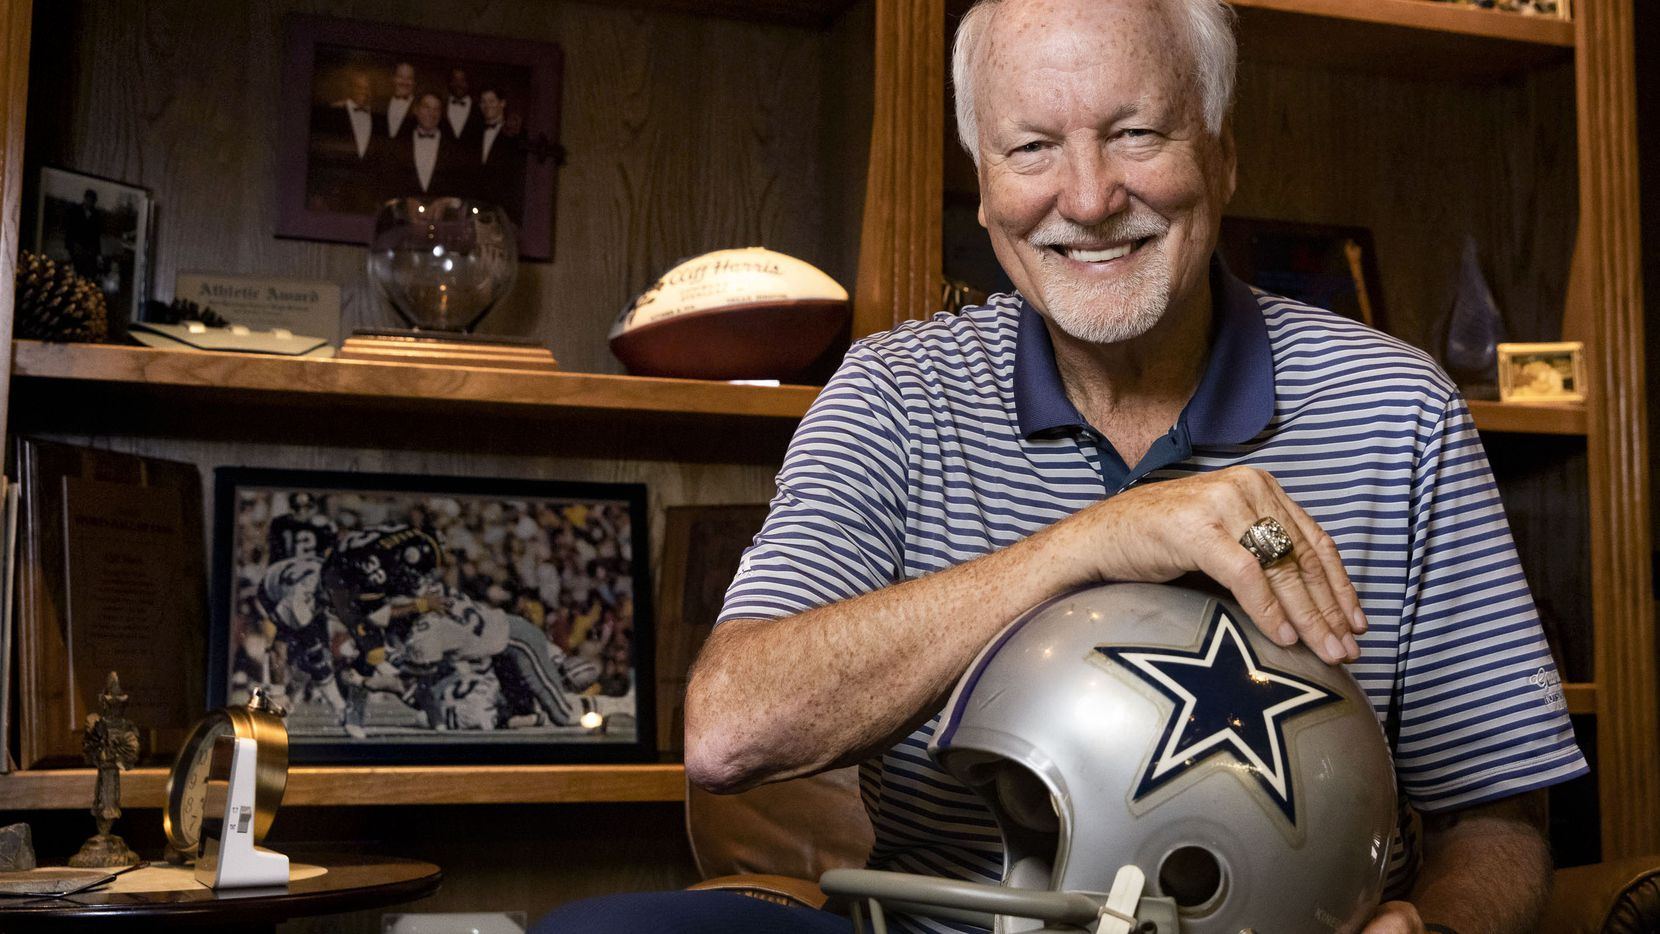 Former Dallas Cowboys great Cliff Harris poses for a portrait in the study of his home in Dallas on Tuesday, June 8, 2021. Harris was elected into the Pro Football Hall of Fame Centennial Class of 2020.